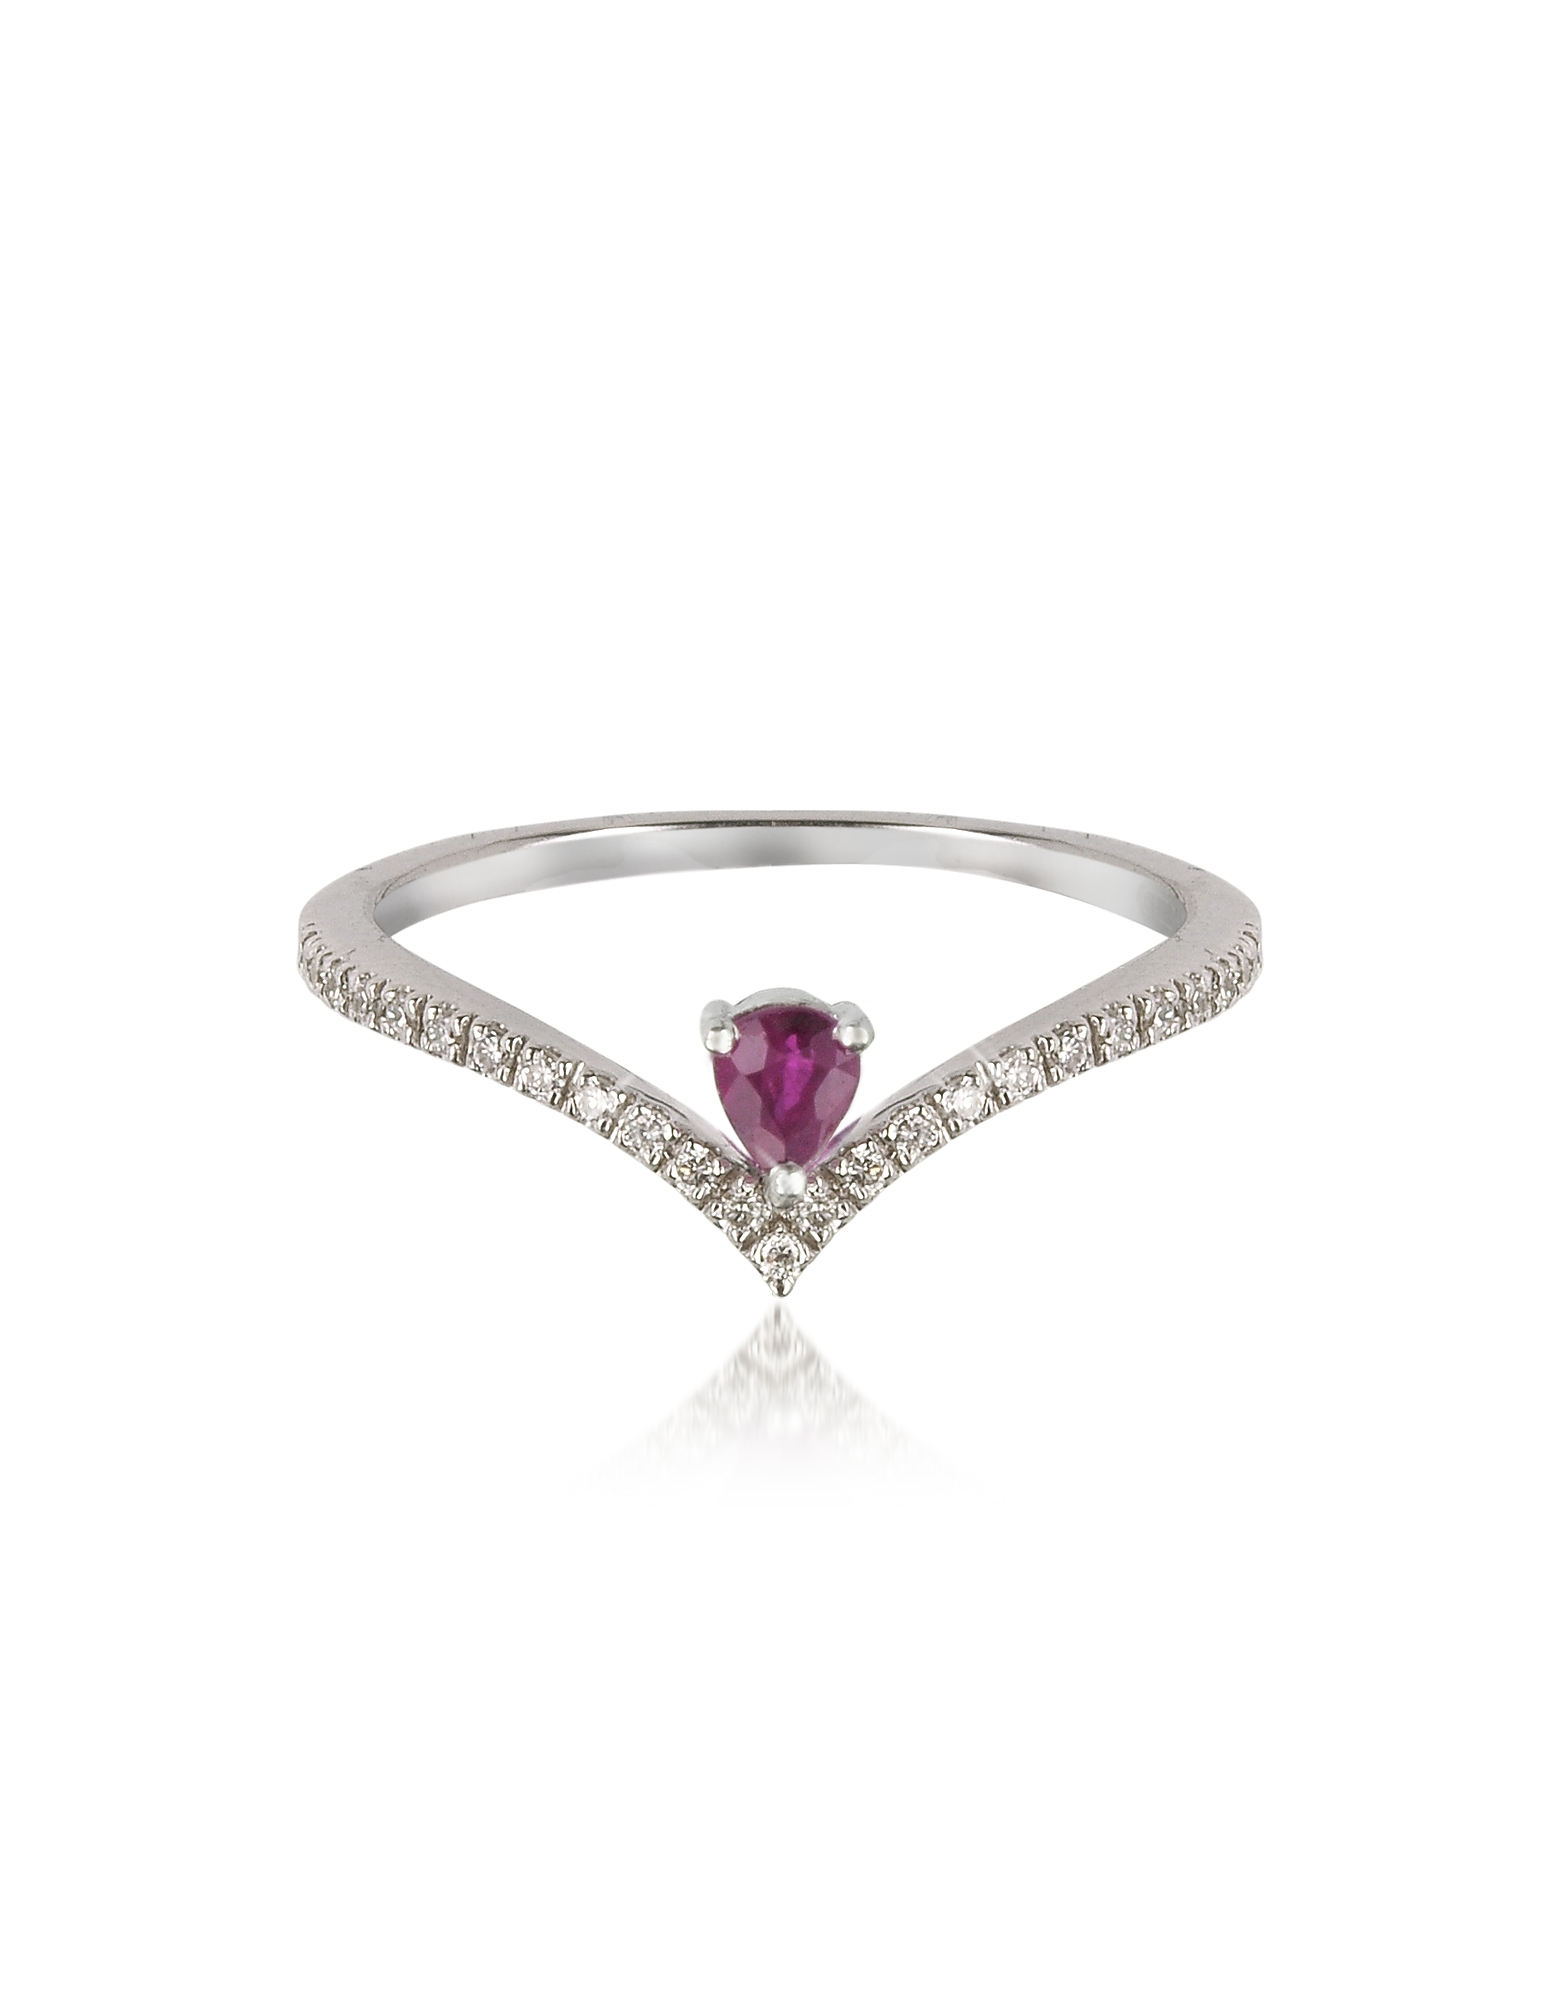 Forzieri Rings, V-Shaped Diamonds Band Ring with Enclosed Drop Ruby